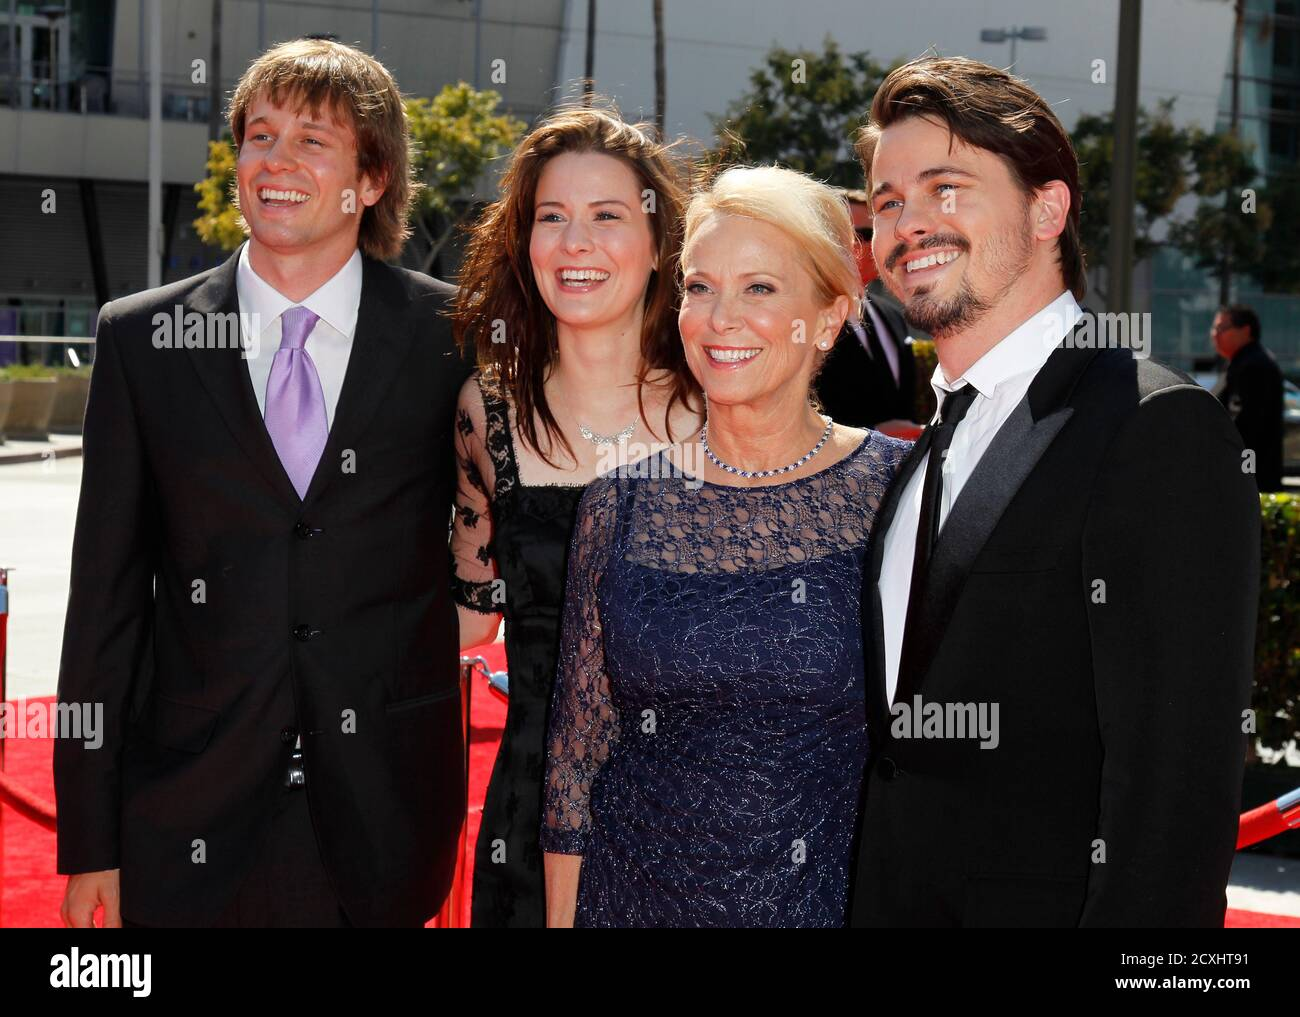 Carly Ritter High Resolution Stock Photography And Images Alamy My shoes keep walking back to you. https www alamy com actor jason ritter r his mother nancy morgan 2nd r his brother tyler l and his sister carly pose together at the 2012 primetime creative arts emmy awards in los angeles september 15 2012 reutersdanny moloshok united states tags entertainment image377791037 html